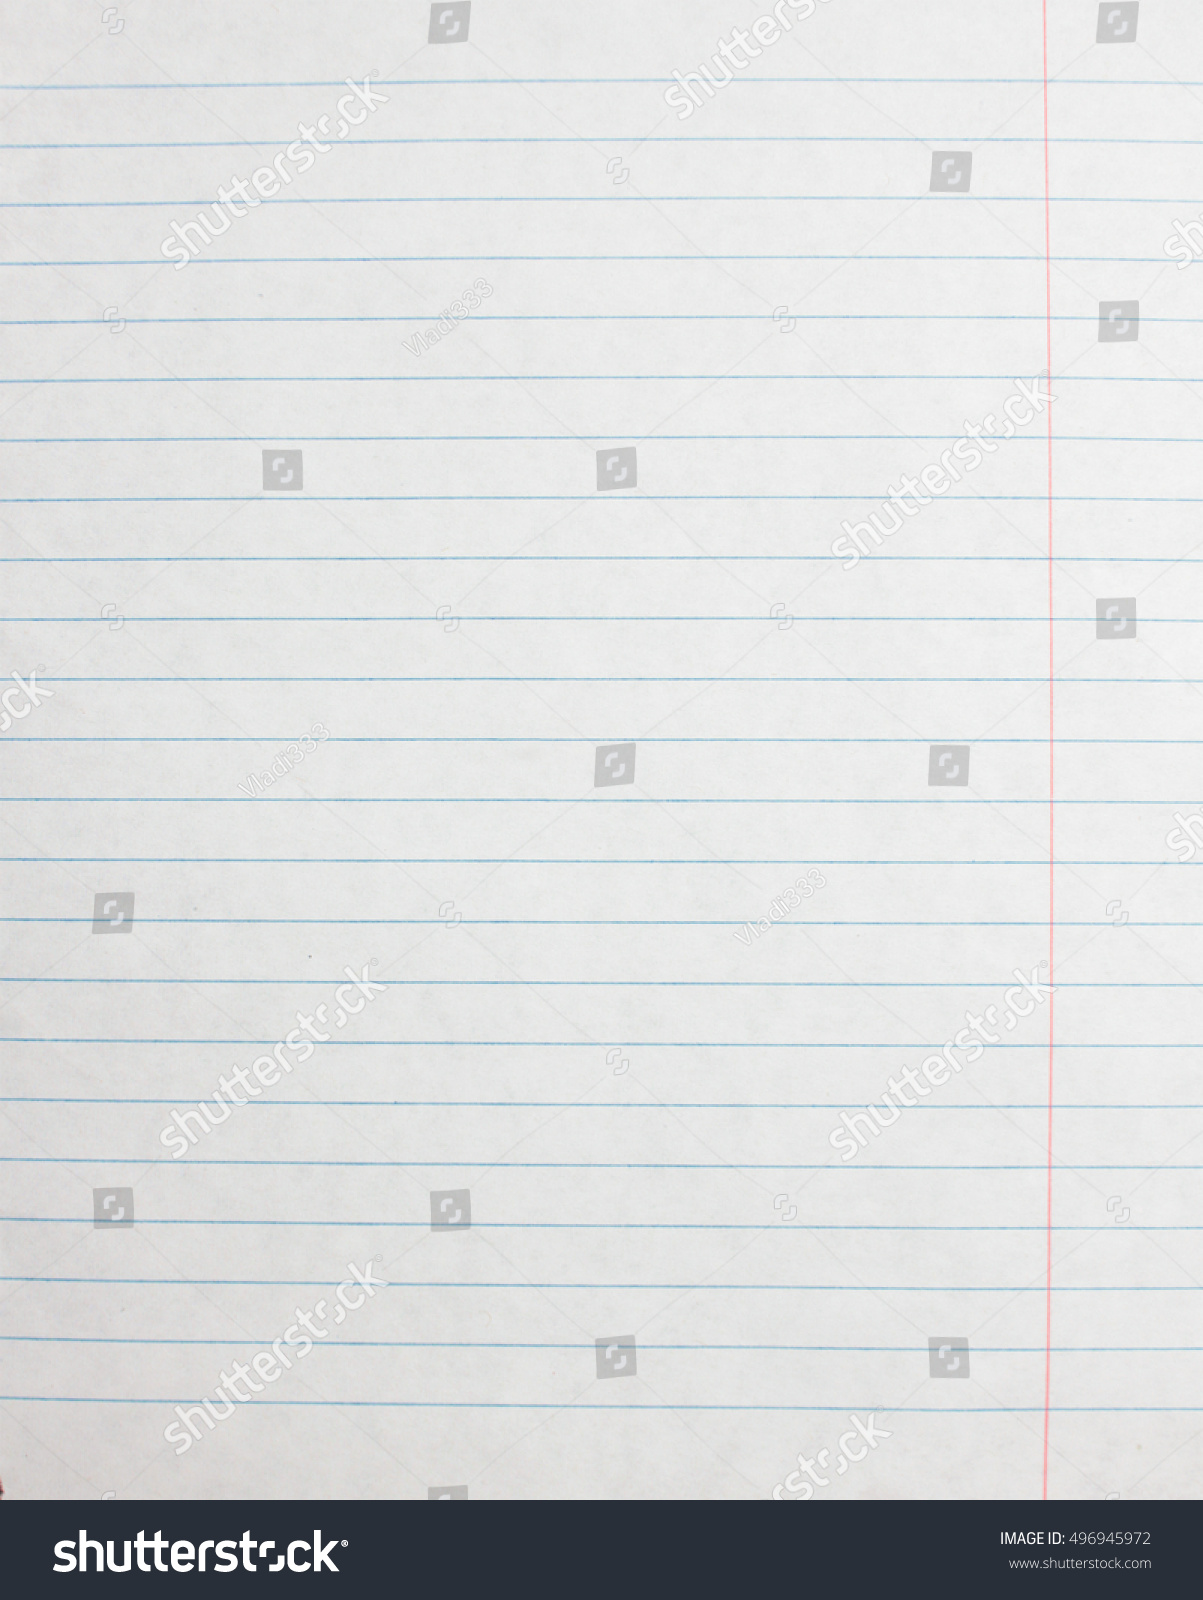 Lined Paper Sheet. Blank Template Of Notebook Page. Linear Background.  Blank Lined Page